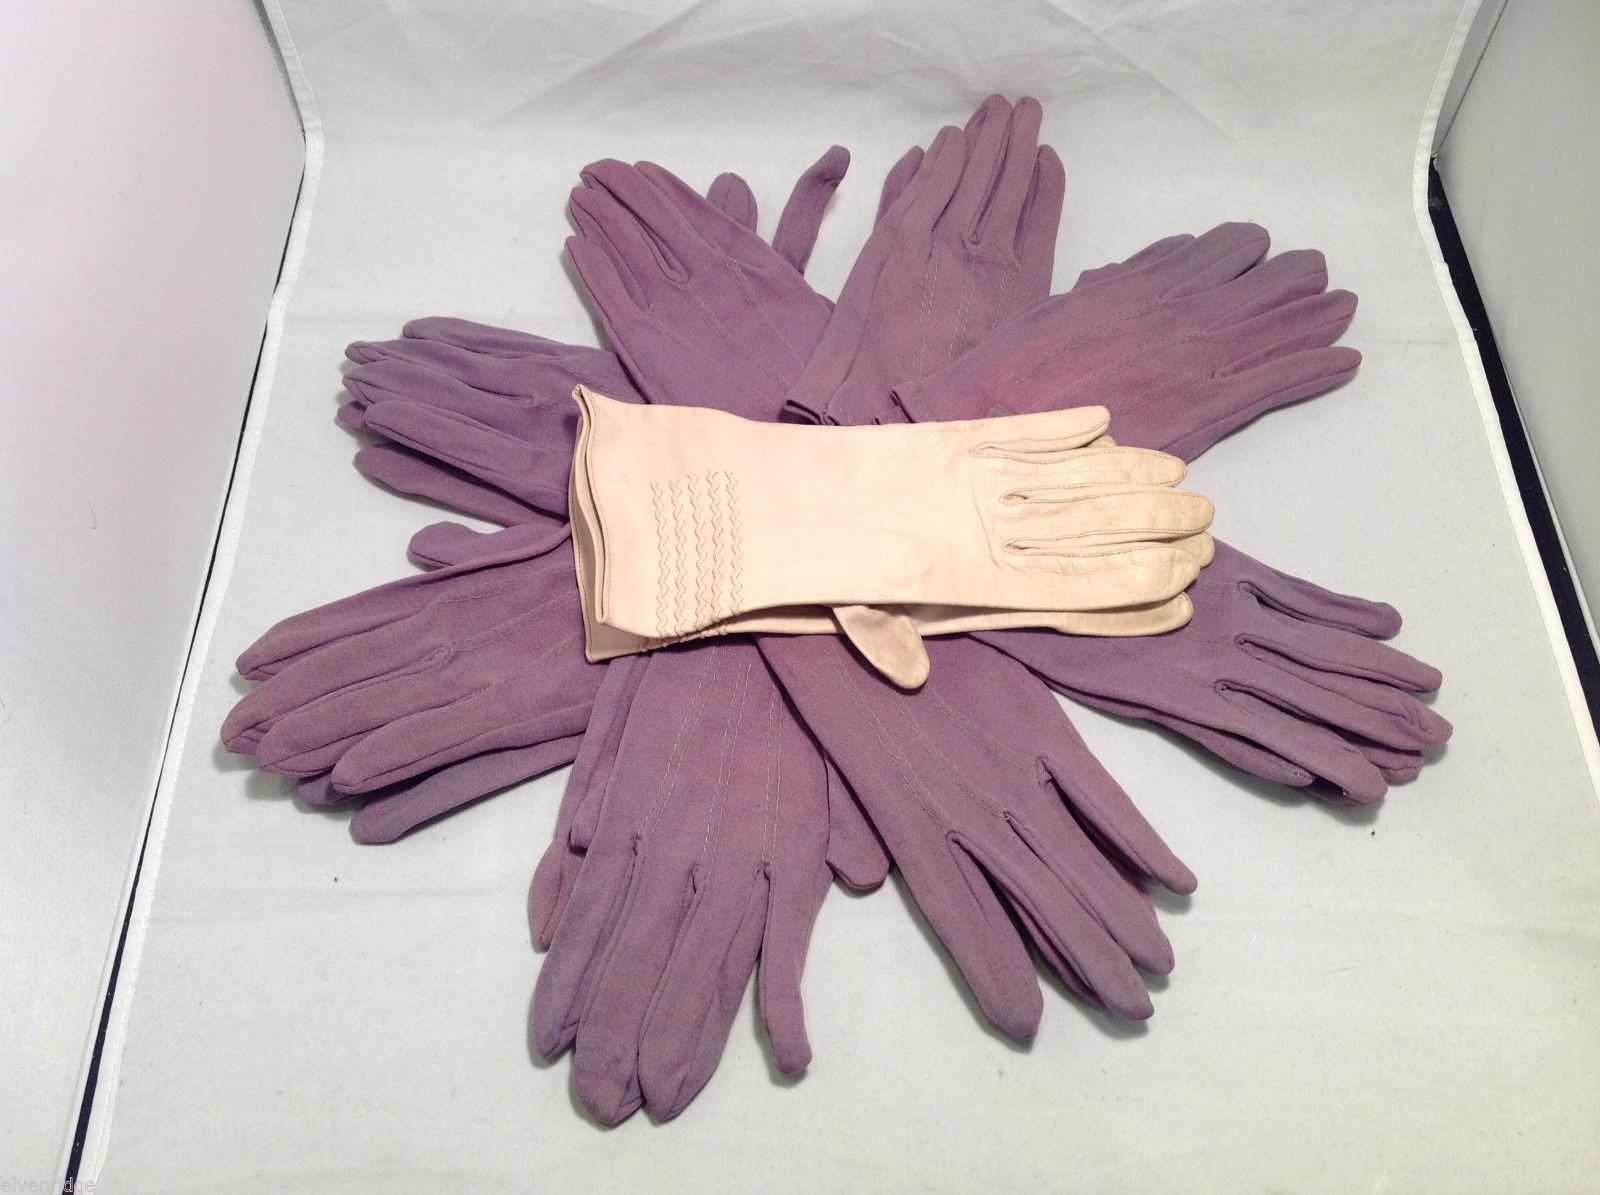 Lot of 7 pair of multipurpose purple gloves, and 1 pair of white gloves